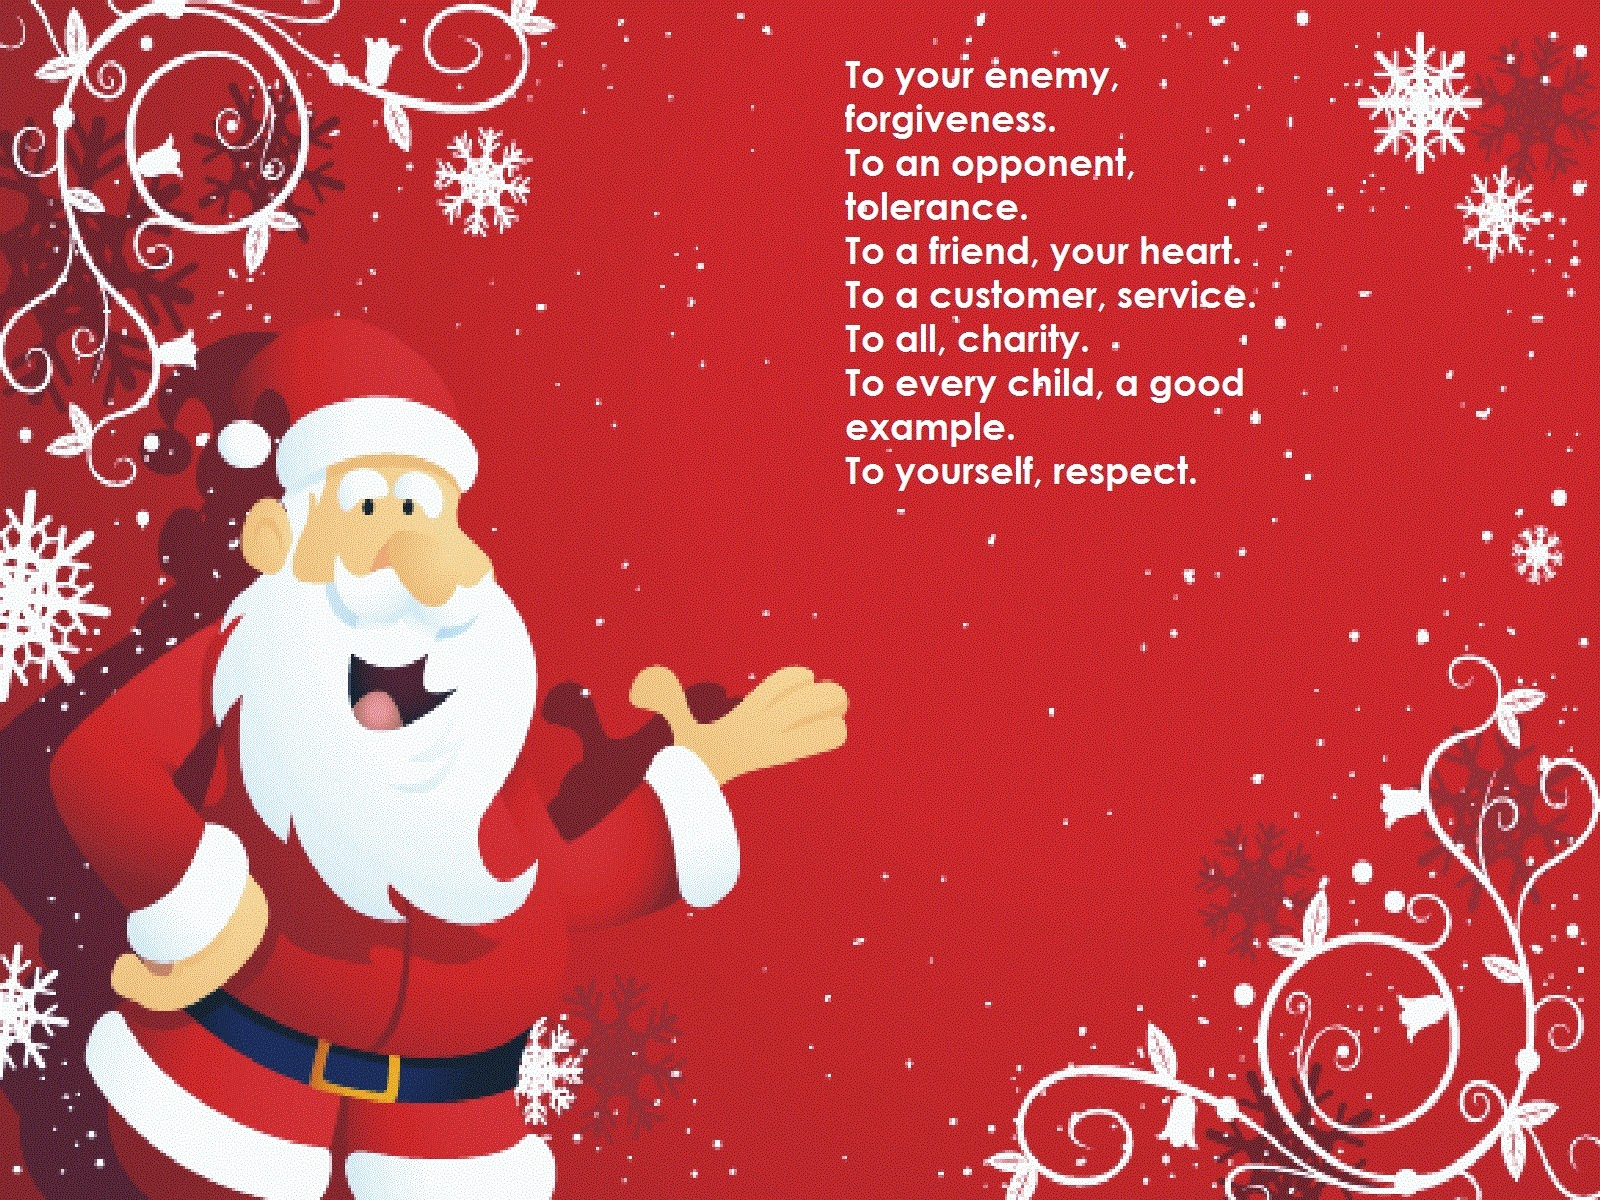 Xmas Quote For Friend : Christmas quotes for friends